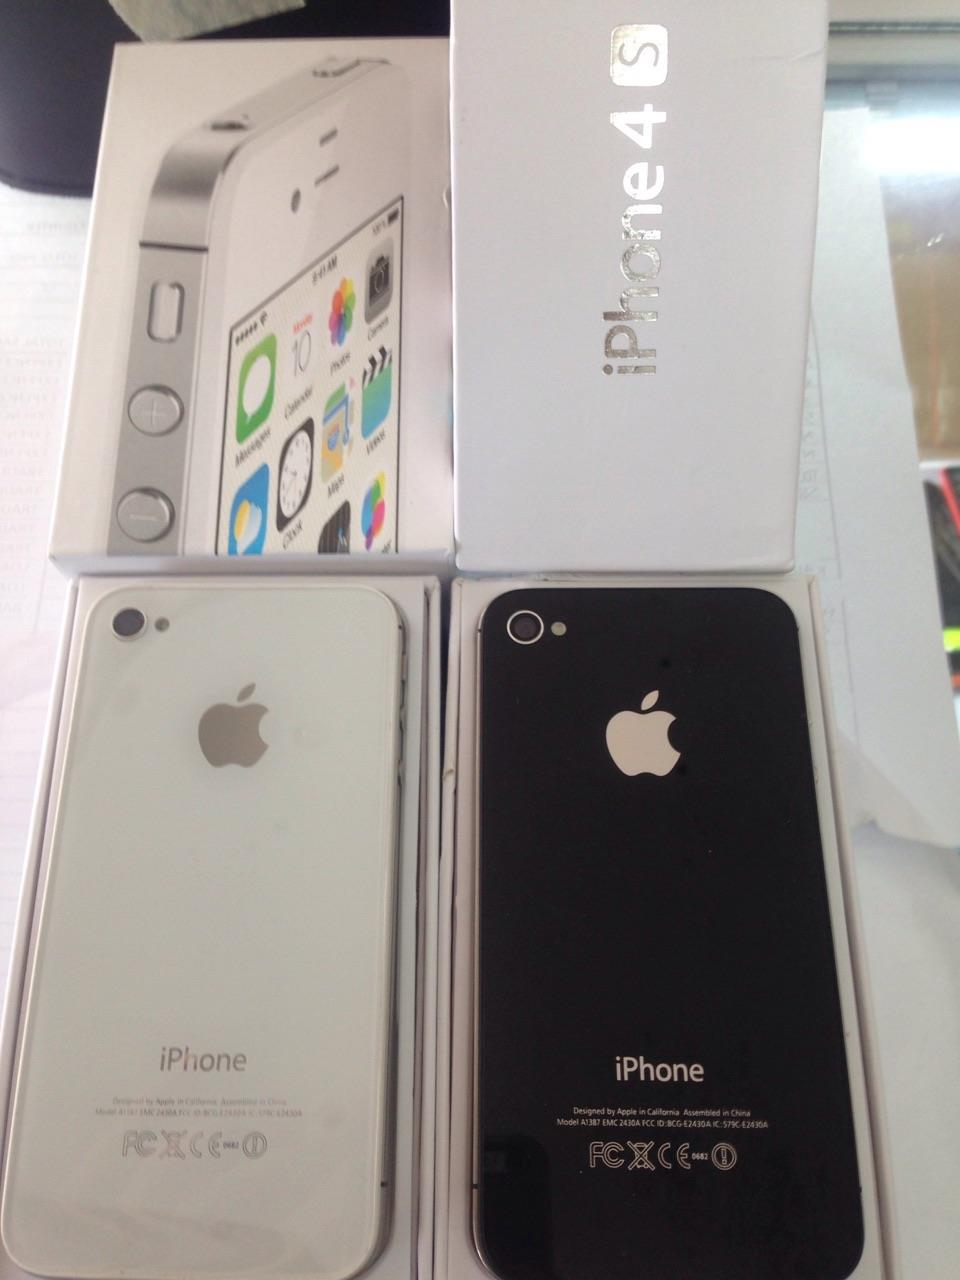 refurbished iphone 4s apple iphone 4s 100 ori new set ref end 7 12 2016 4 15 pm 12849